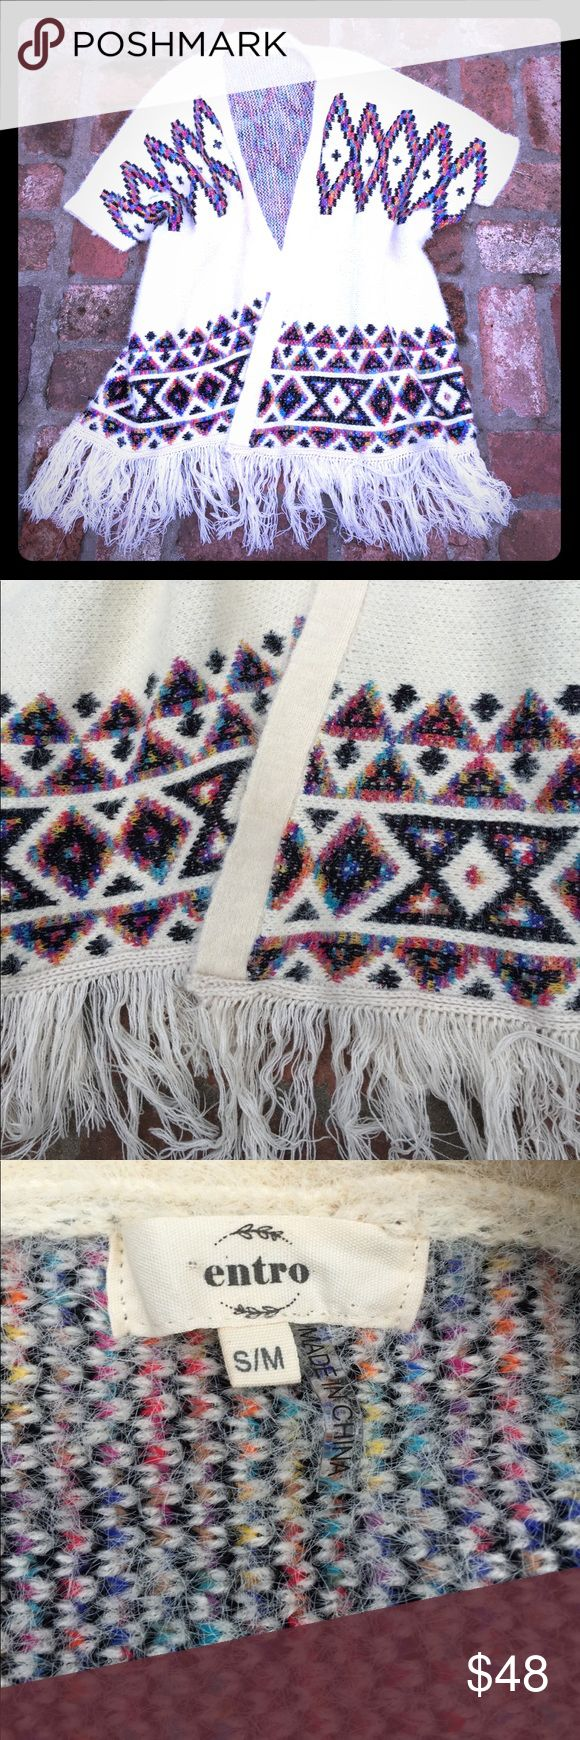 ENTRO COZY SHRUG TRIBAL PRINT🌟🌟 50/50 acrylic/polyester blend shrug with beautiful colors!  Tribal print on winter white!  No issues, gently worn entro Sweaters Shrugs & Ponchos